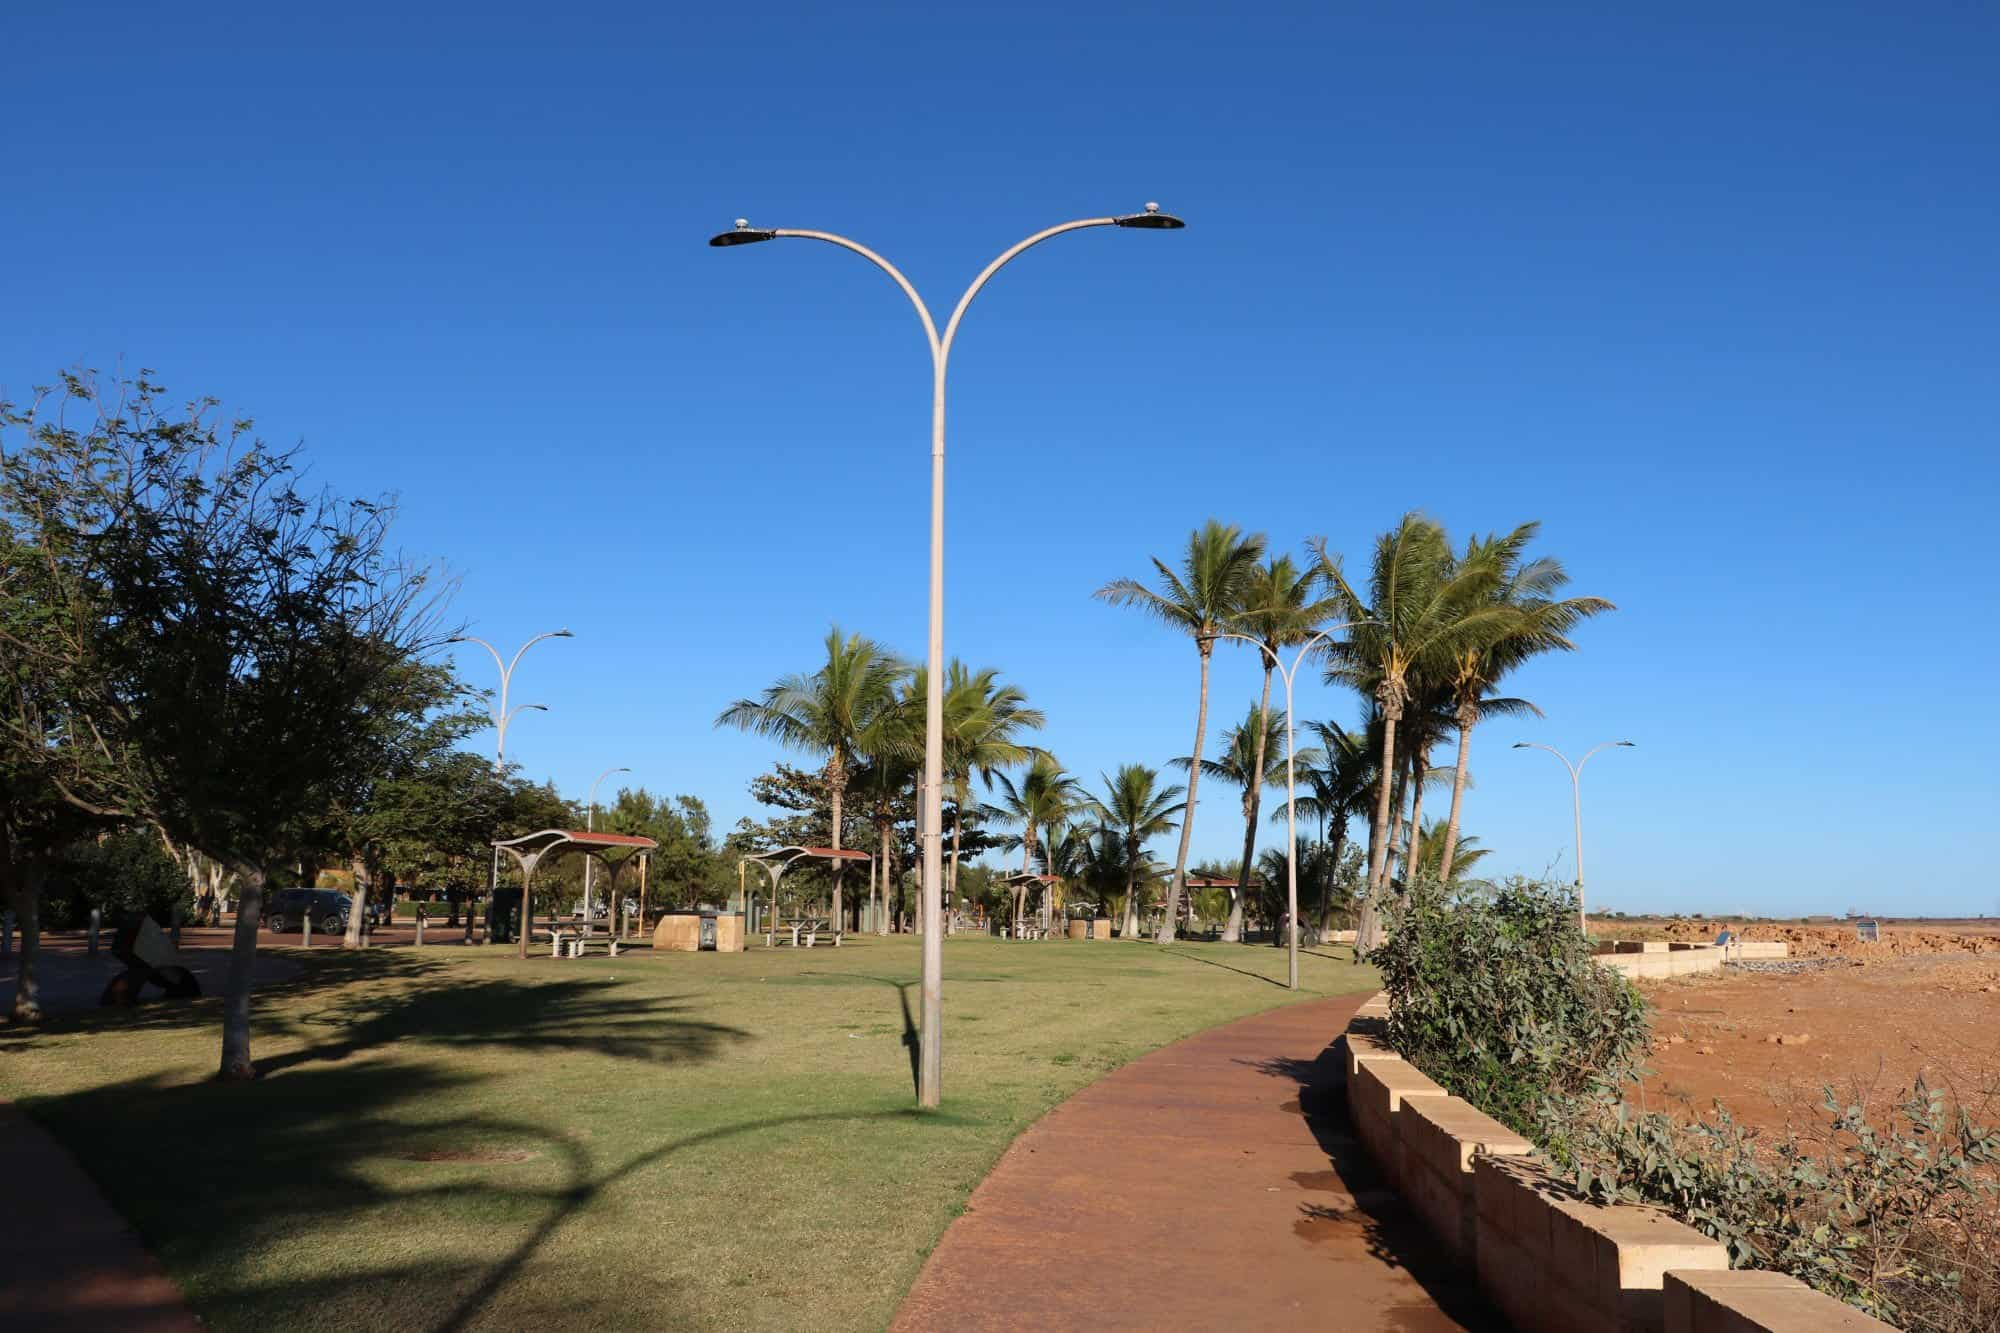 Smart street lighting at Port Hedland